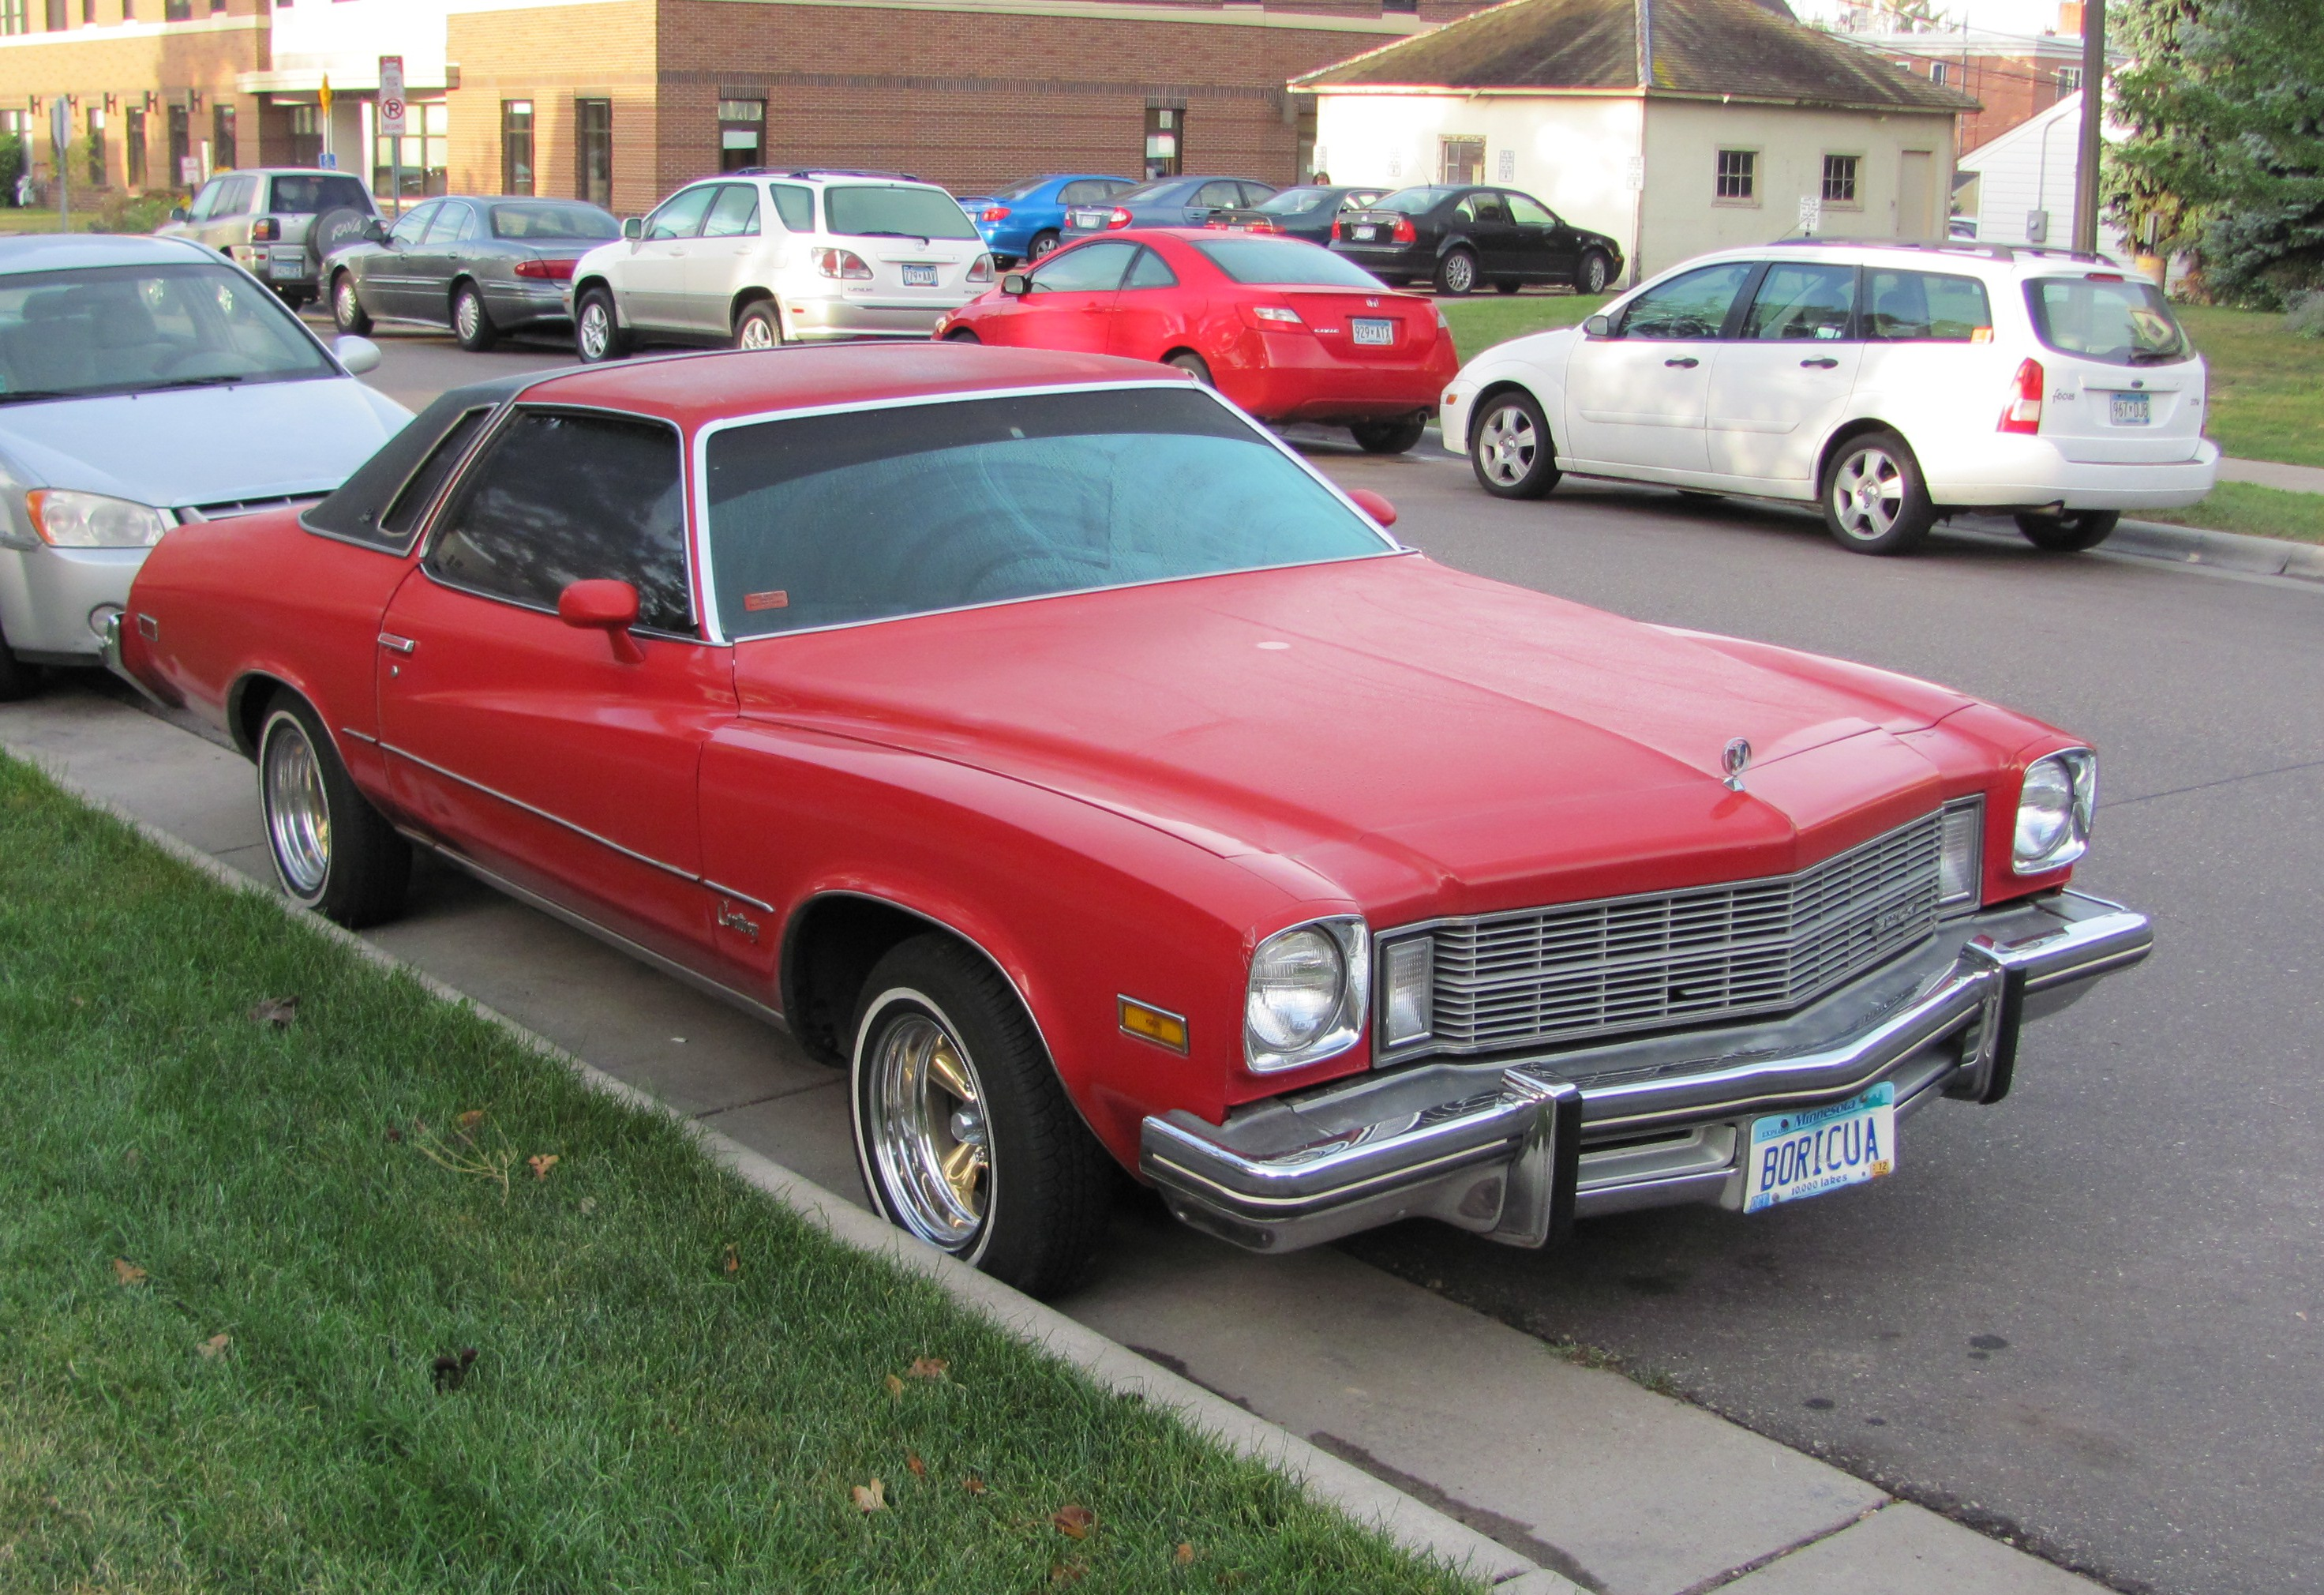 Buick centry photo - 5